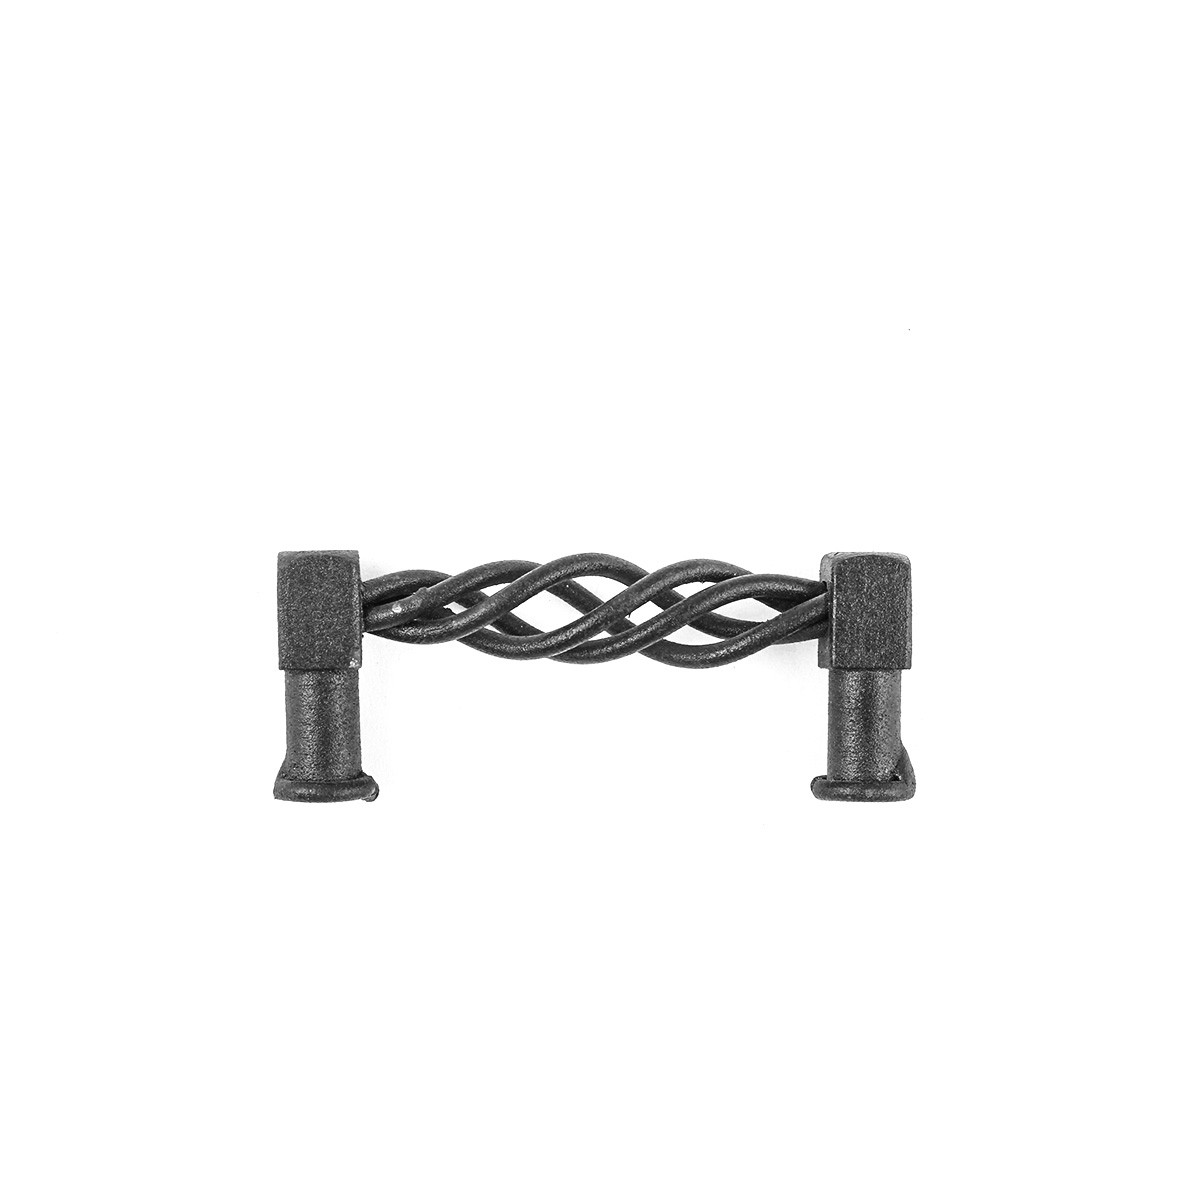 2 Drawer Pulls Black Wrought Iron 312 Set of 2 Cabinet Pull Cabinet Hardware Drawer Pull